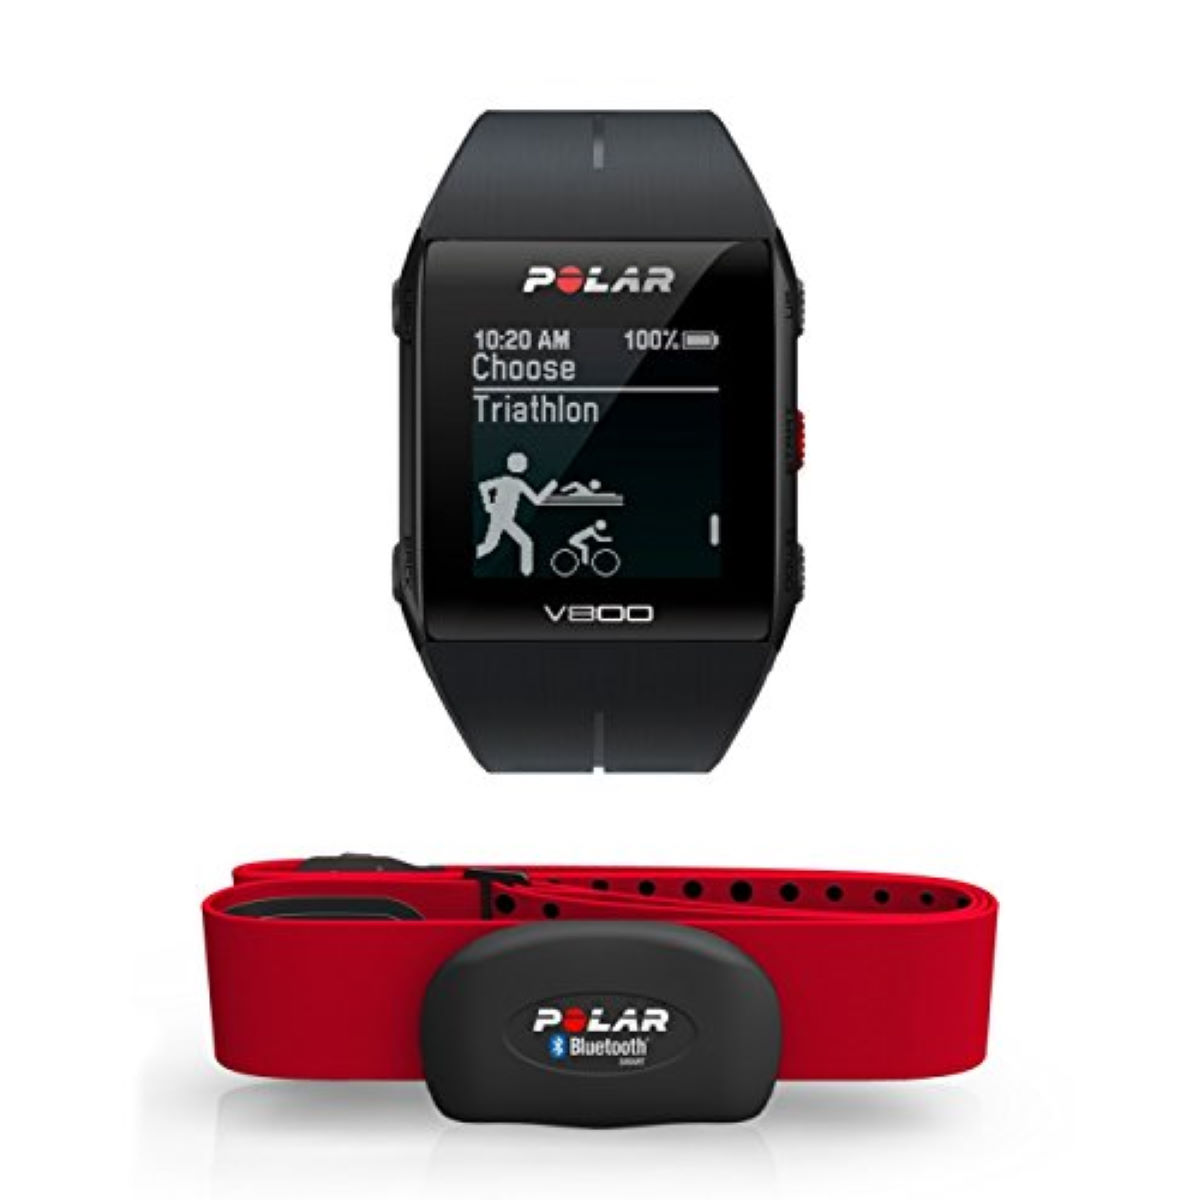 Sports watch with Polar heart rate monitor - V800 - GPS heart rate monitors